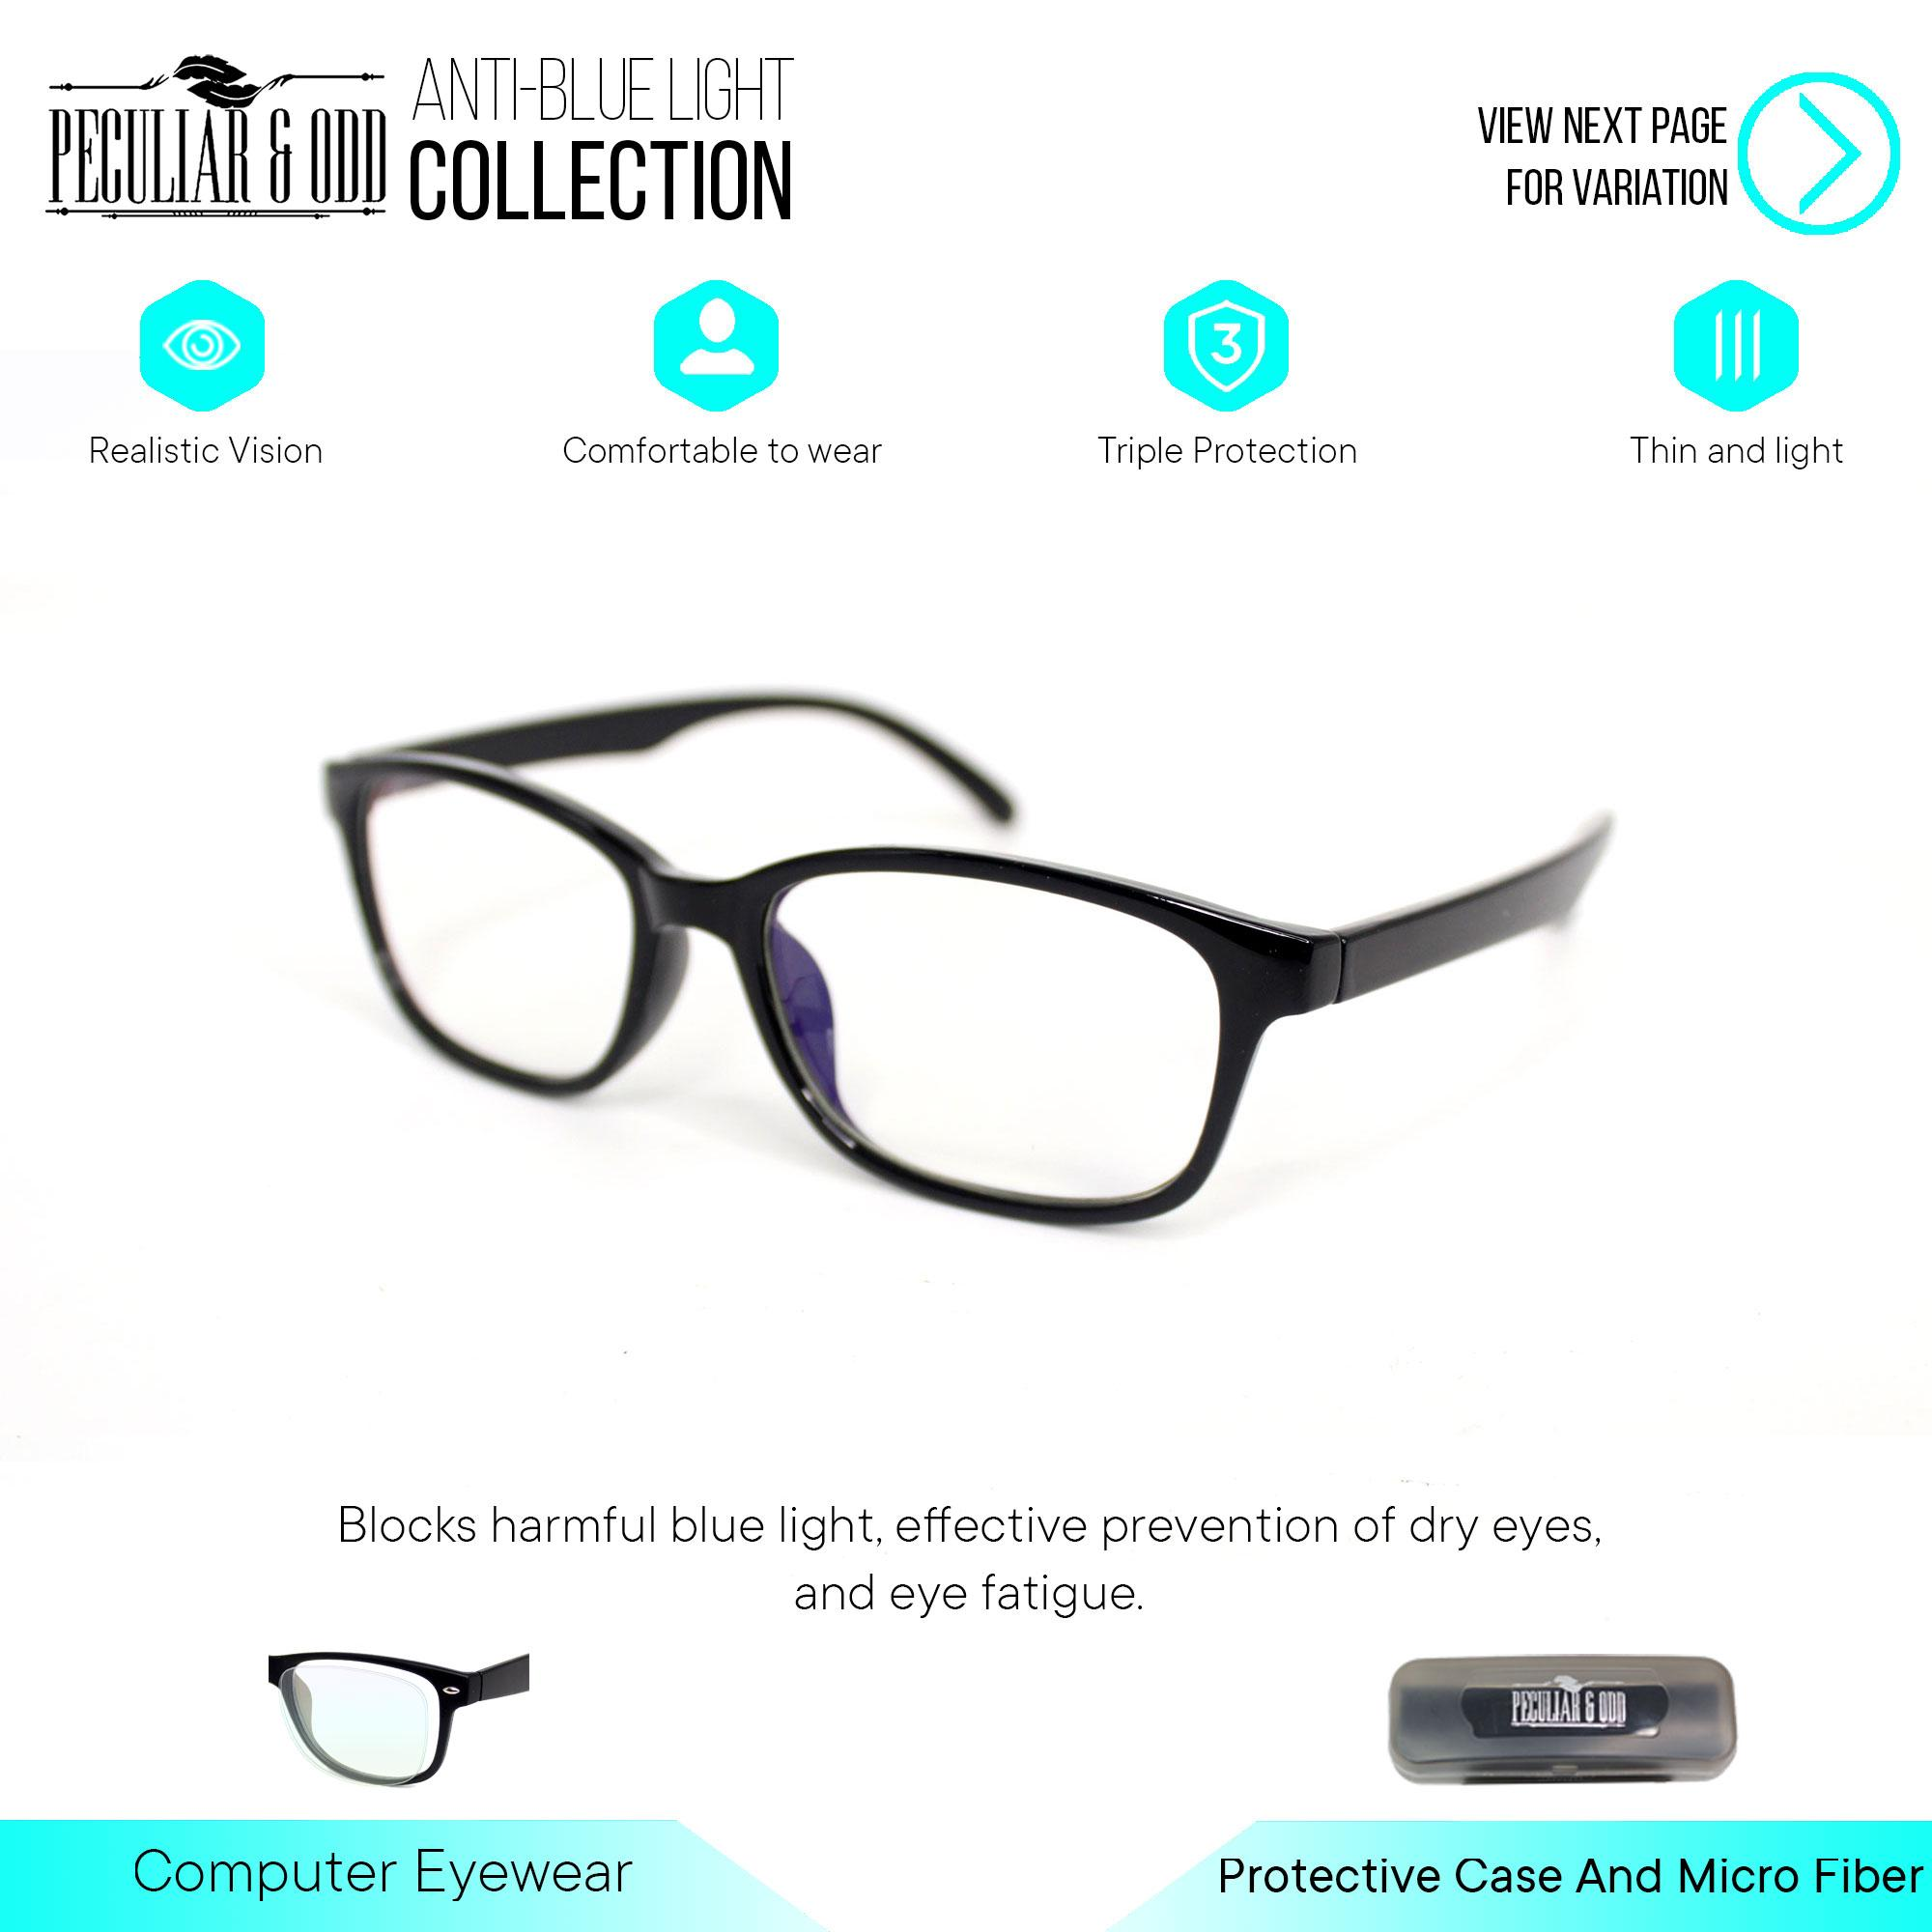 3a402de147 Peculiar Square 3028 JetBlack Anti Radiation Computer Eyeglass Optical  Replaceable Eyewear Unisex